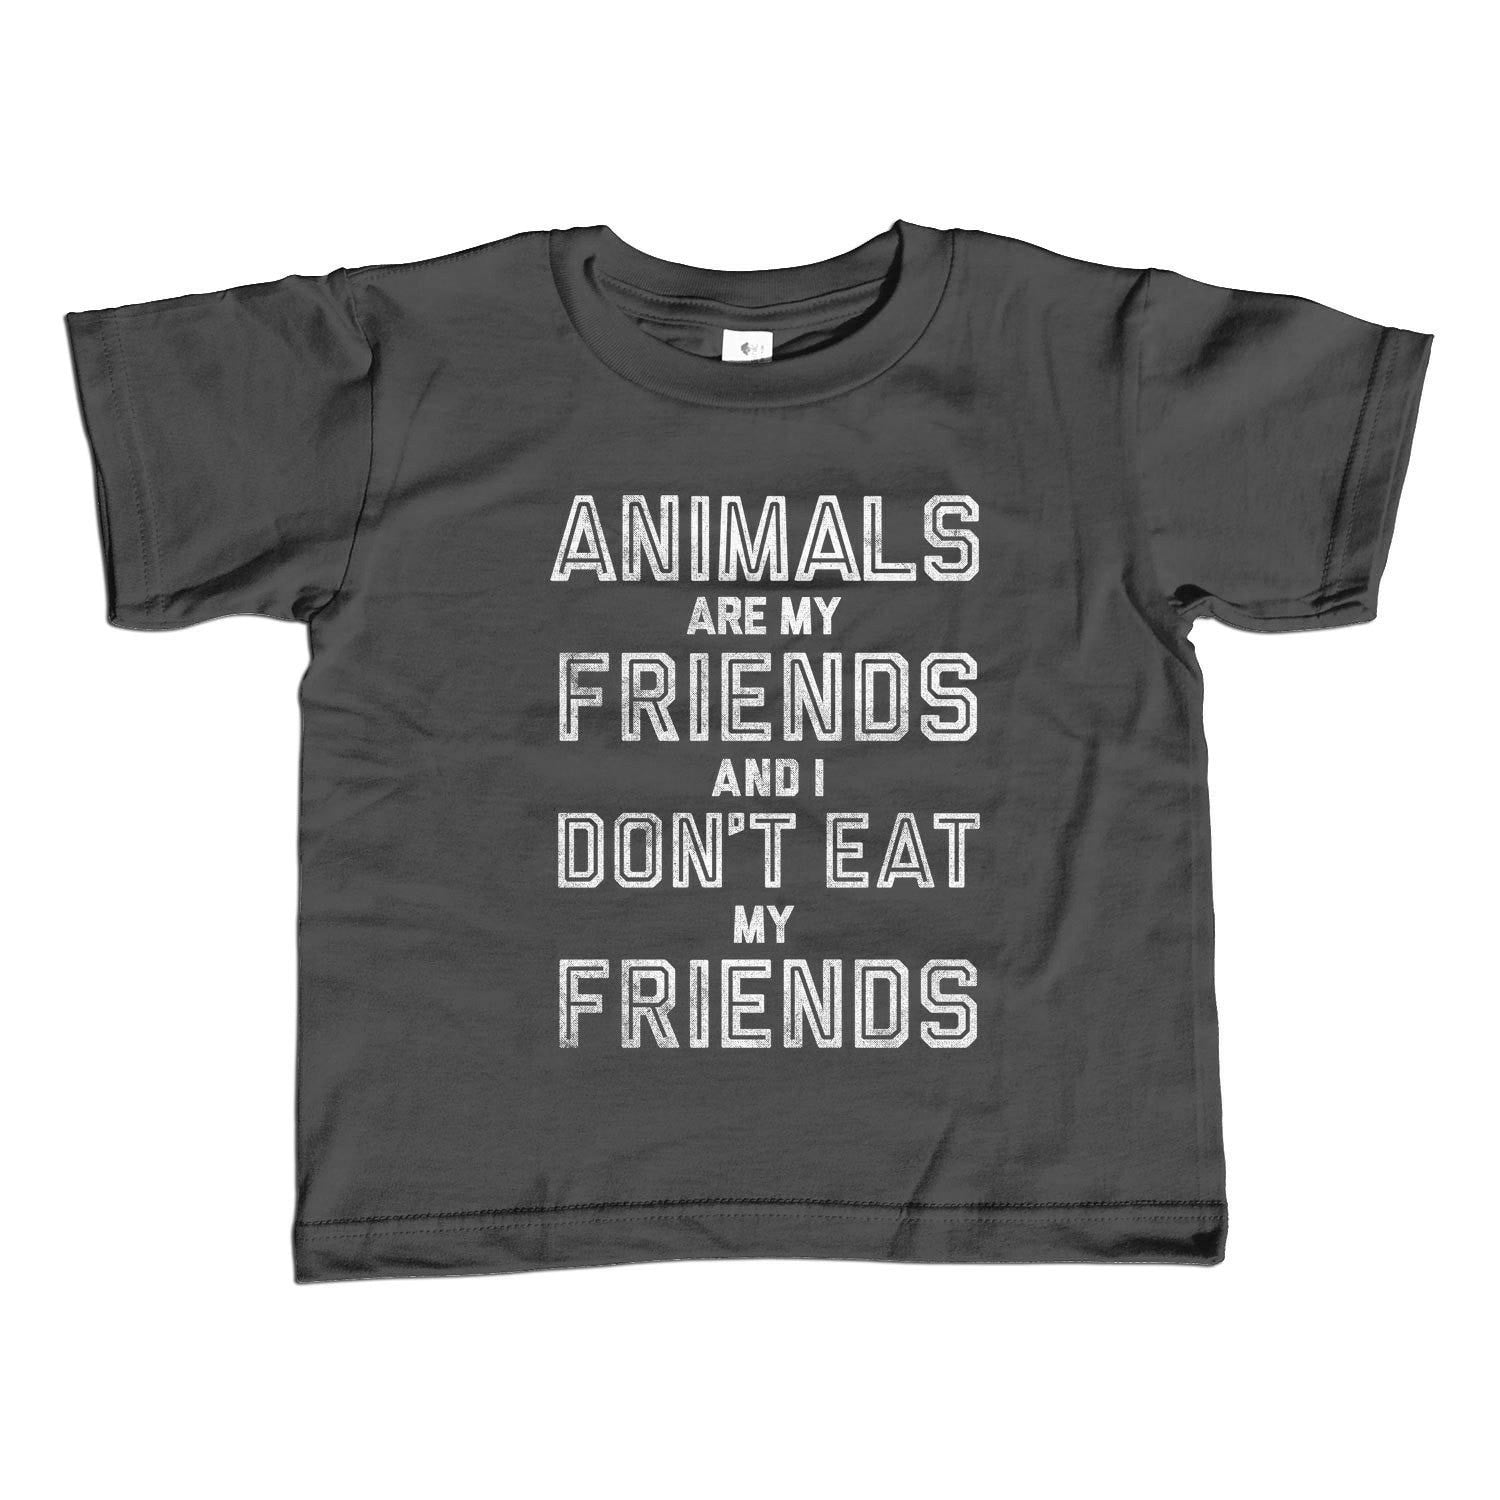 Girl's Animals Are My Friends and I Don't Eat My Friends T-Shirt - Unisex Fit Vegetarian Kids TShirt